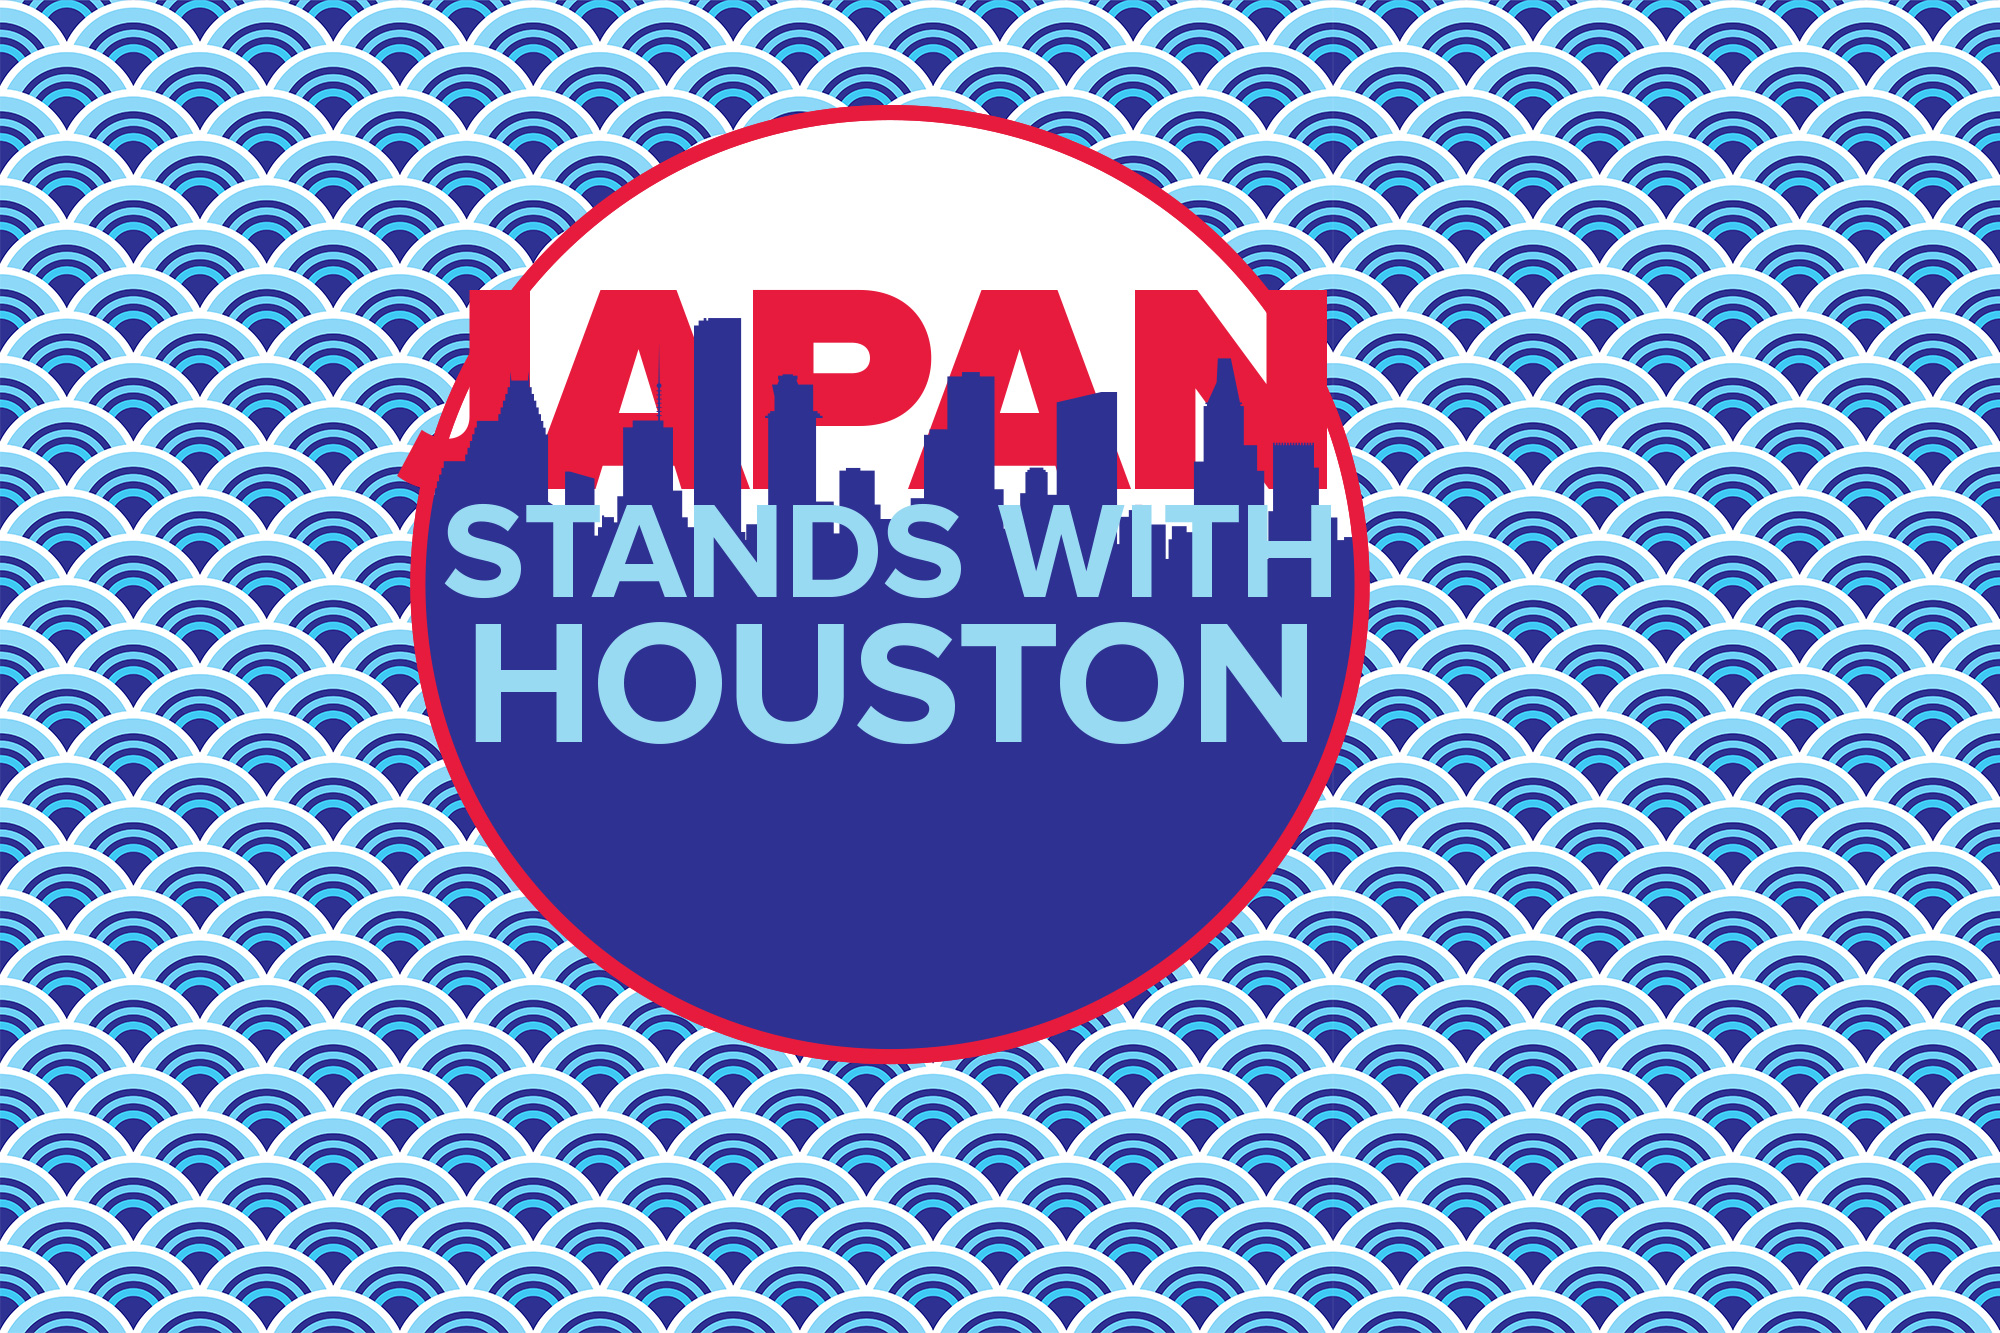 Japan-Stands-with-Houston_slide.jpg